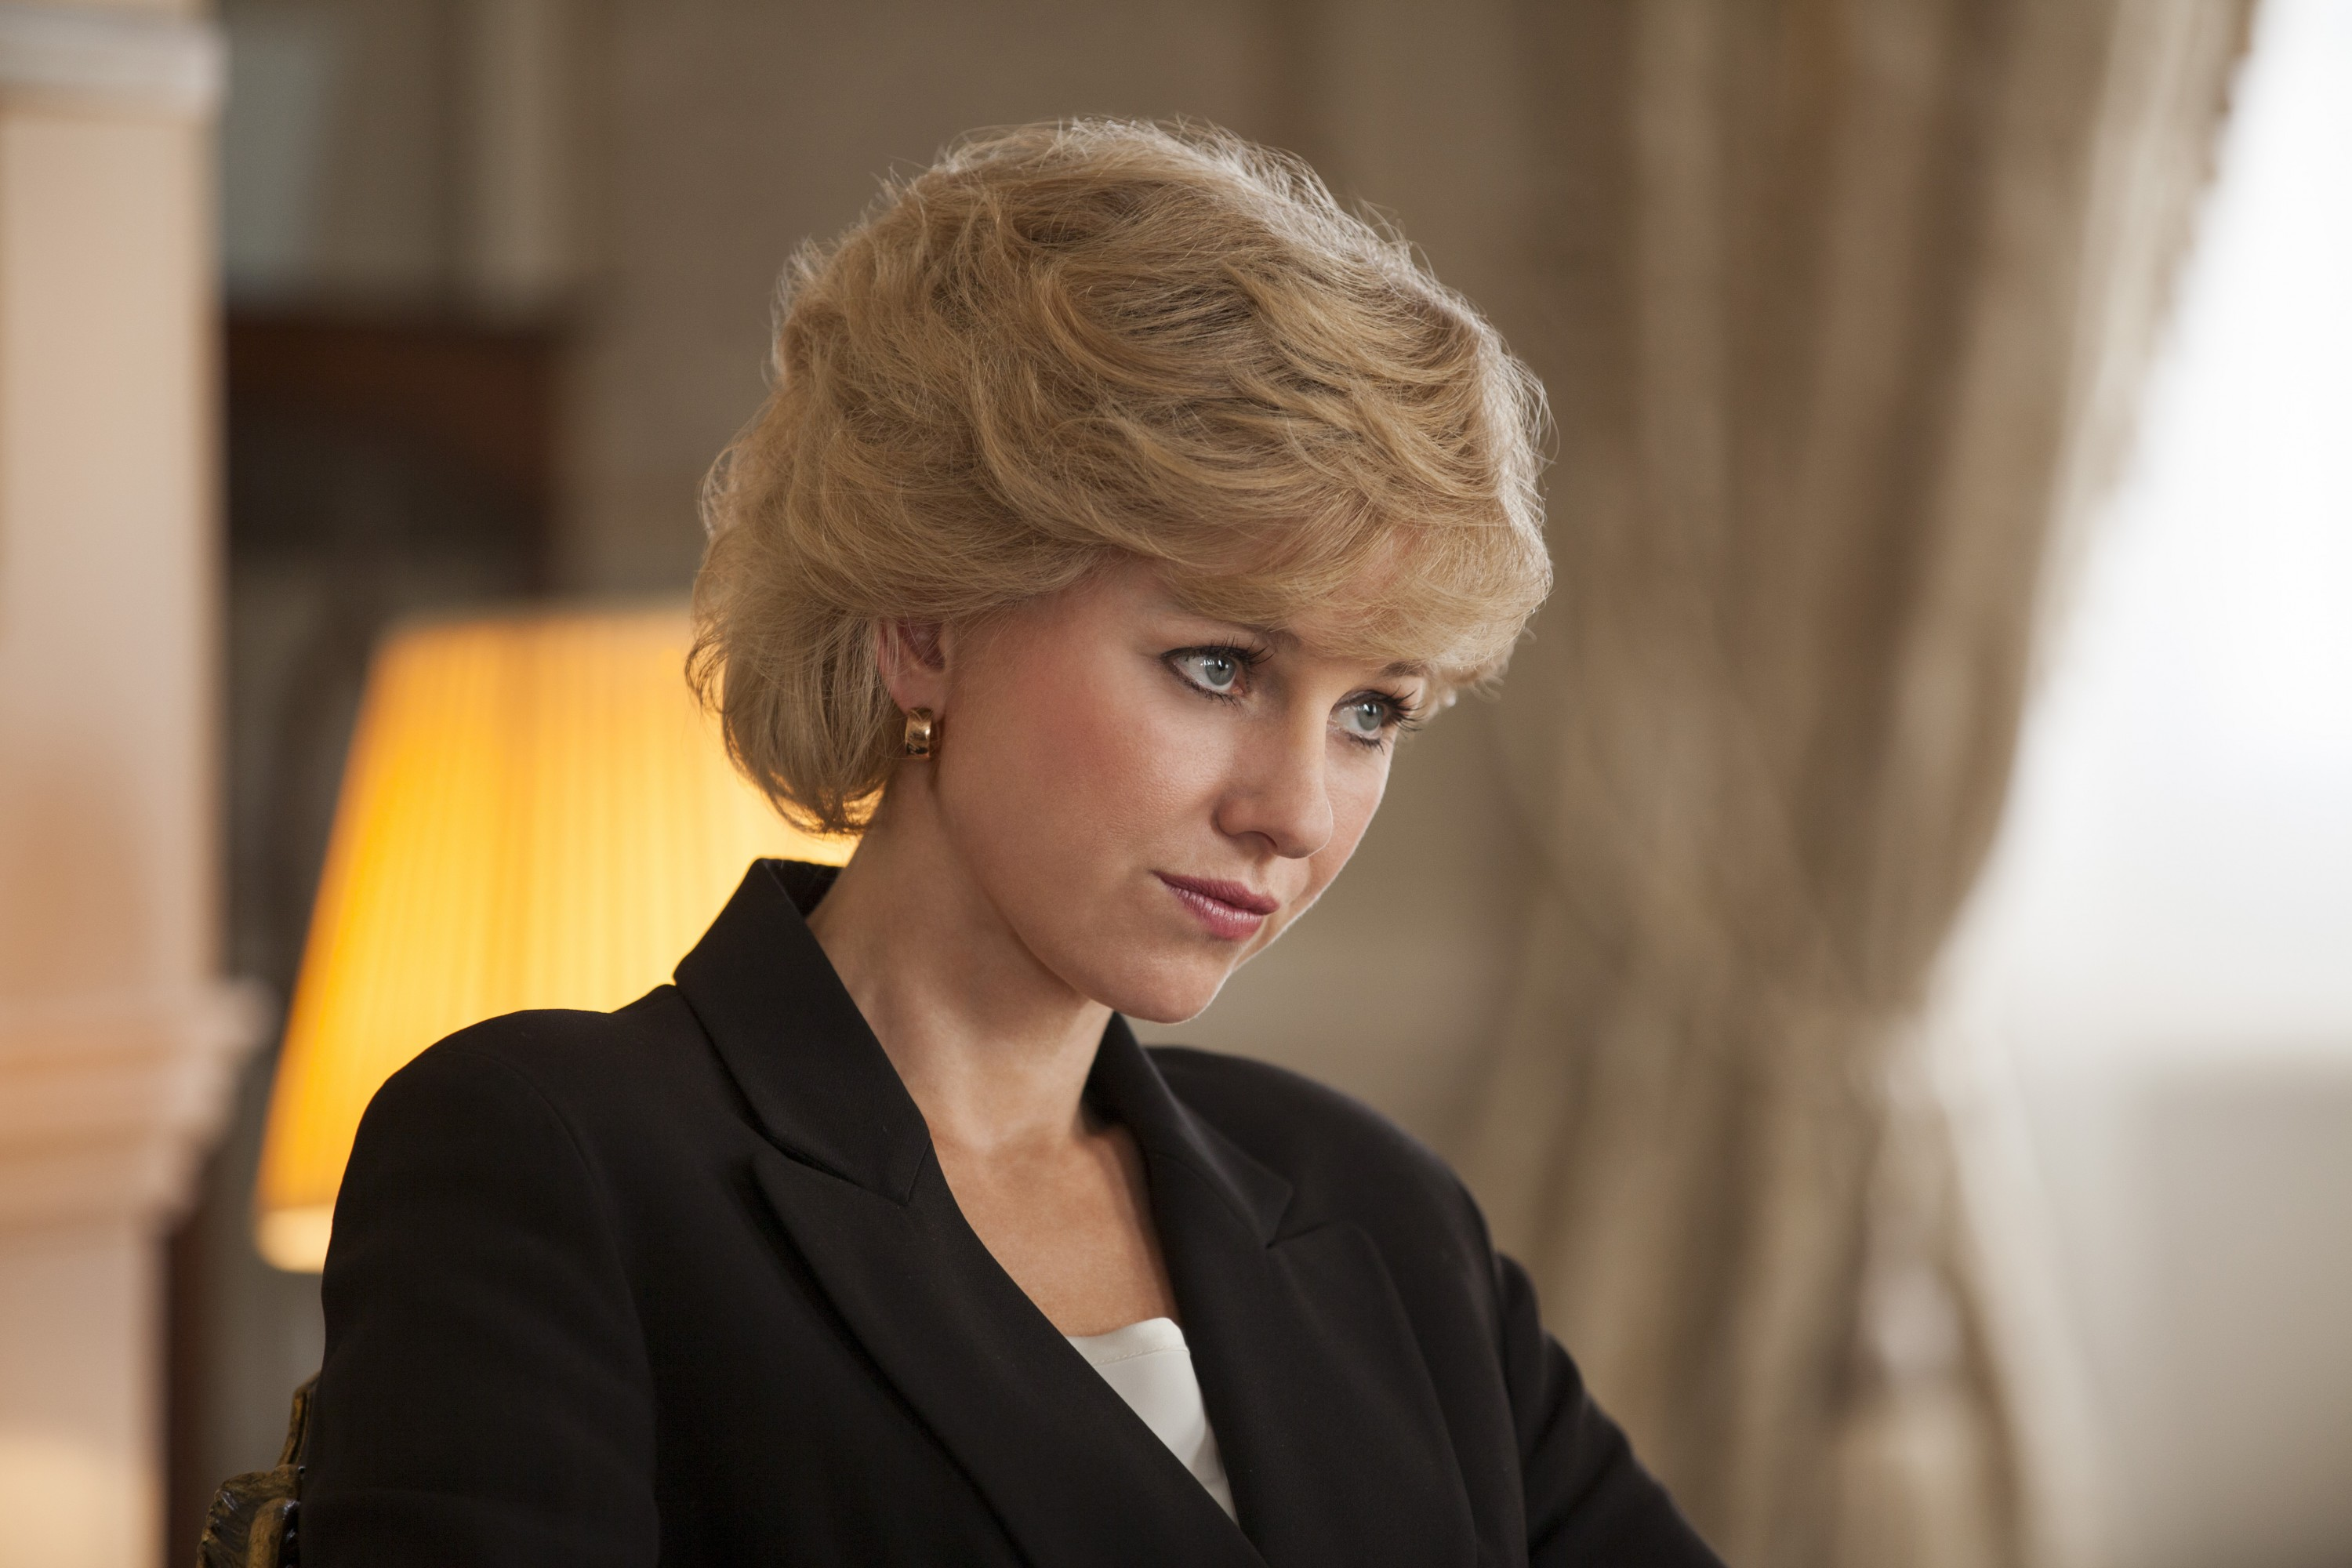 Naomi Watts as the Princess of Wales on the big screen